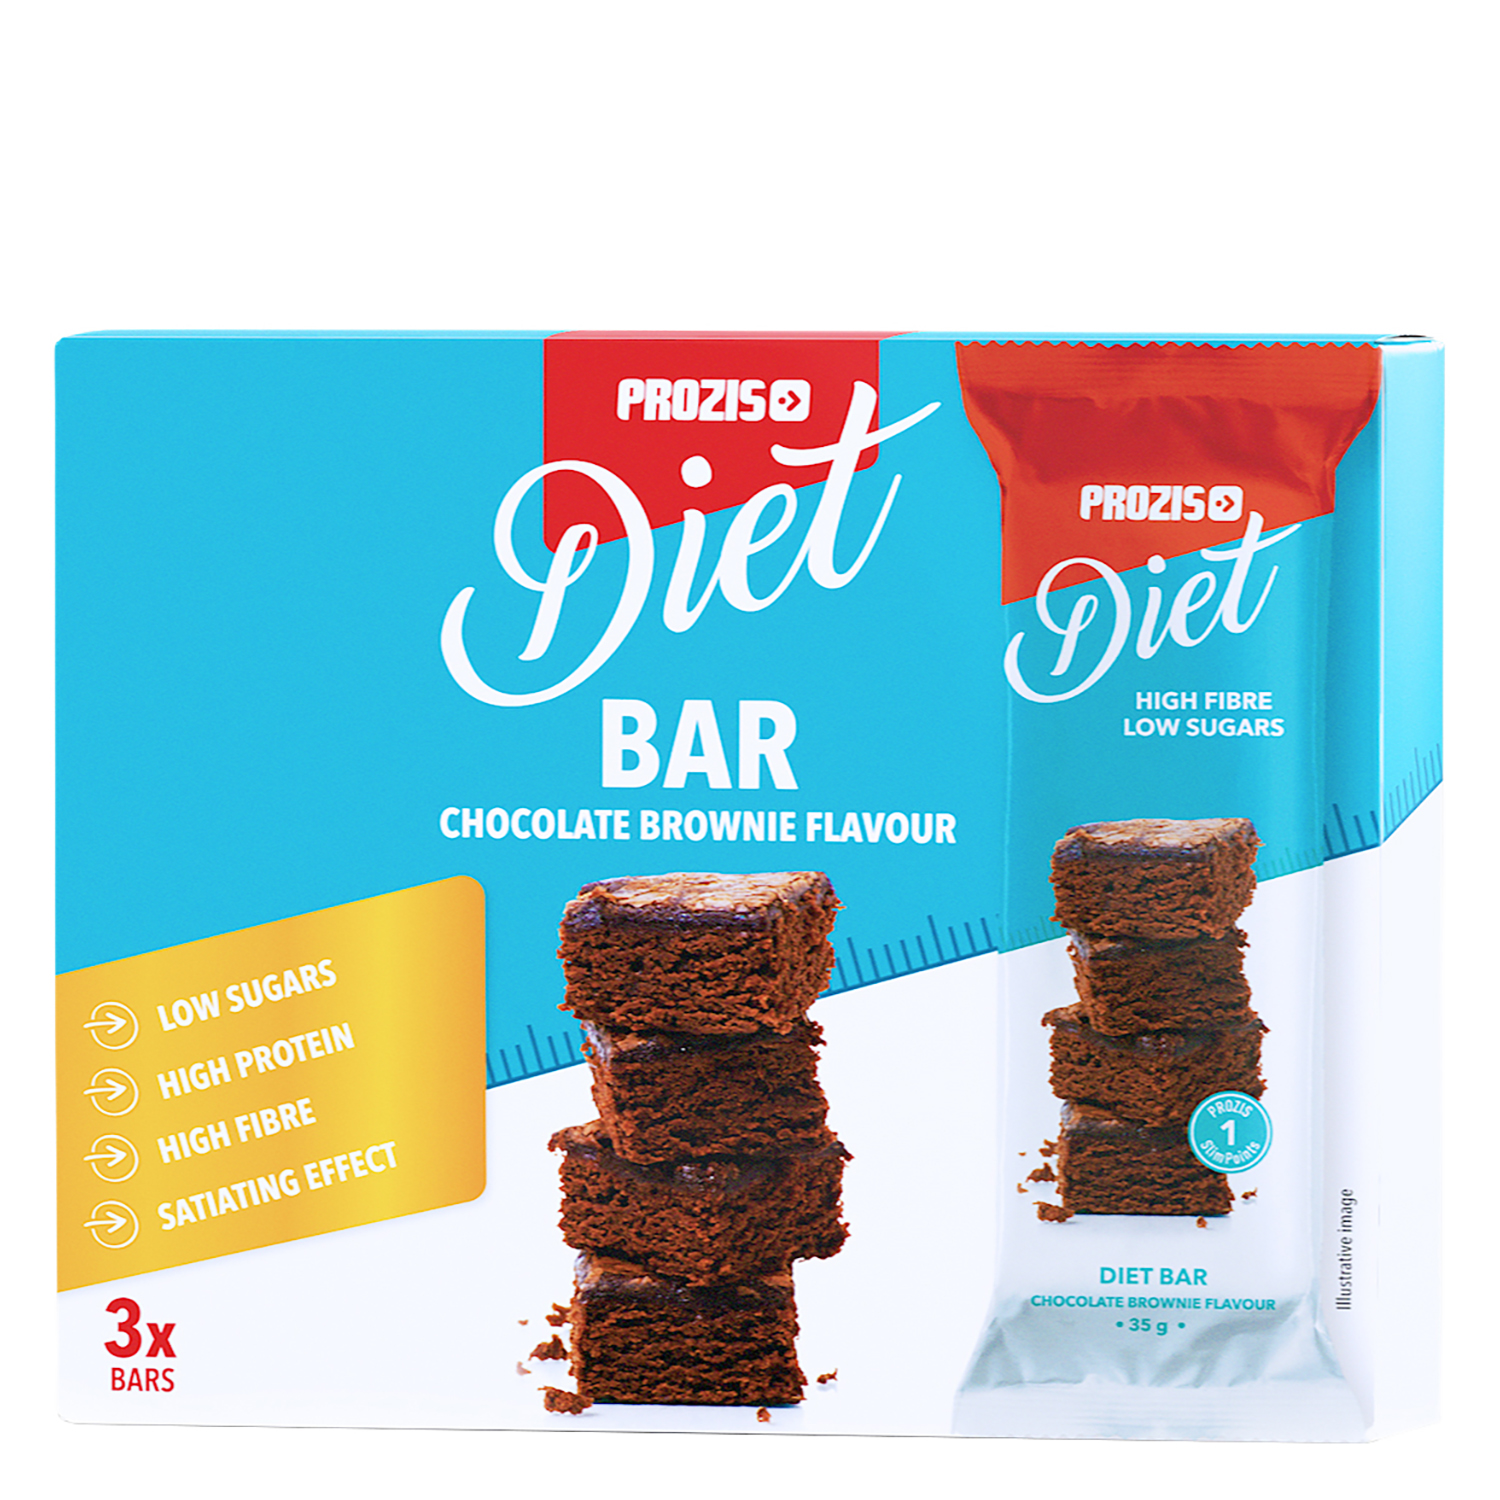 Barrita saciante sabor brownie de chocolate Prozis pack de 3 barritas de 35 g.